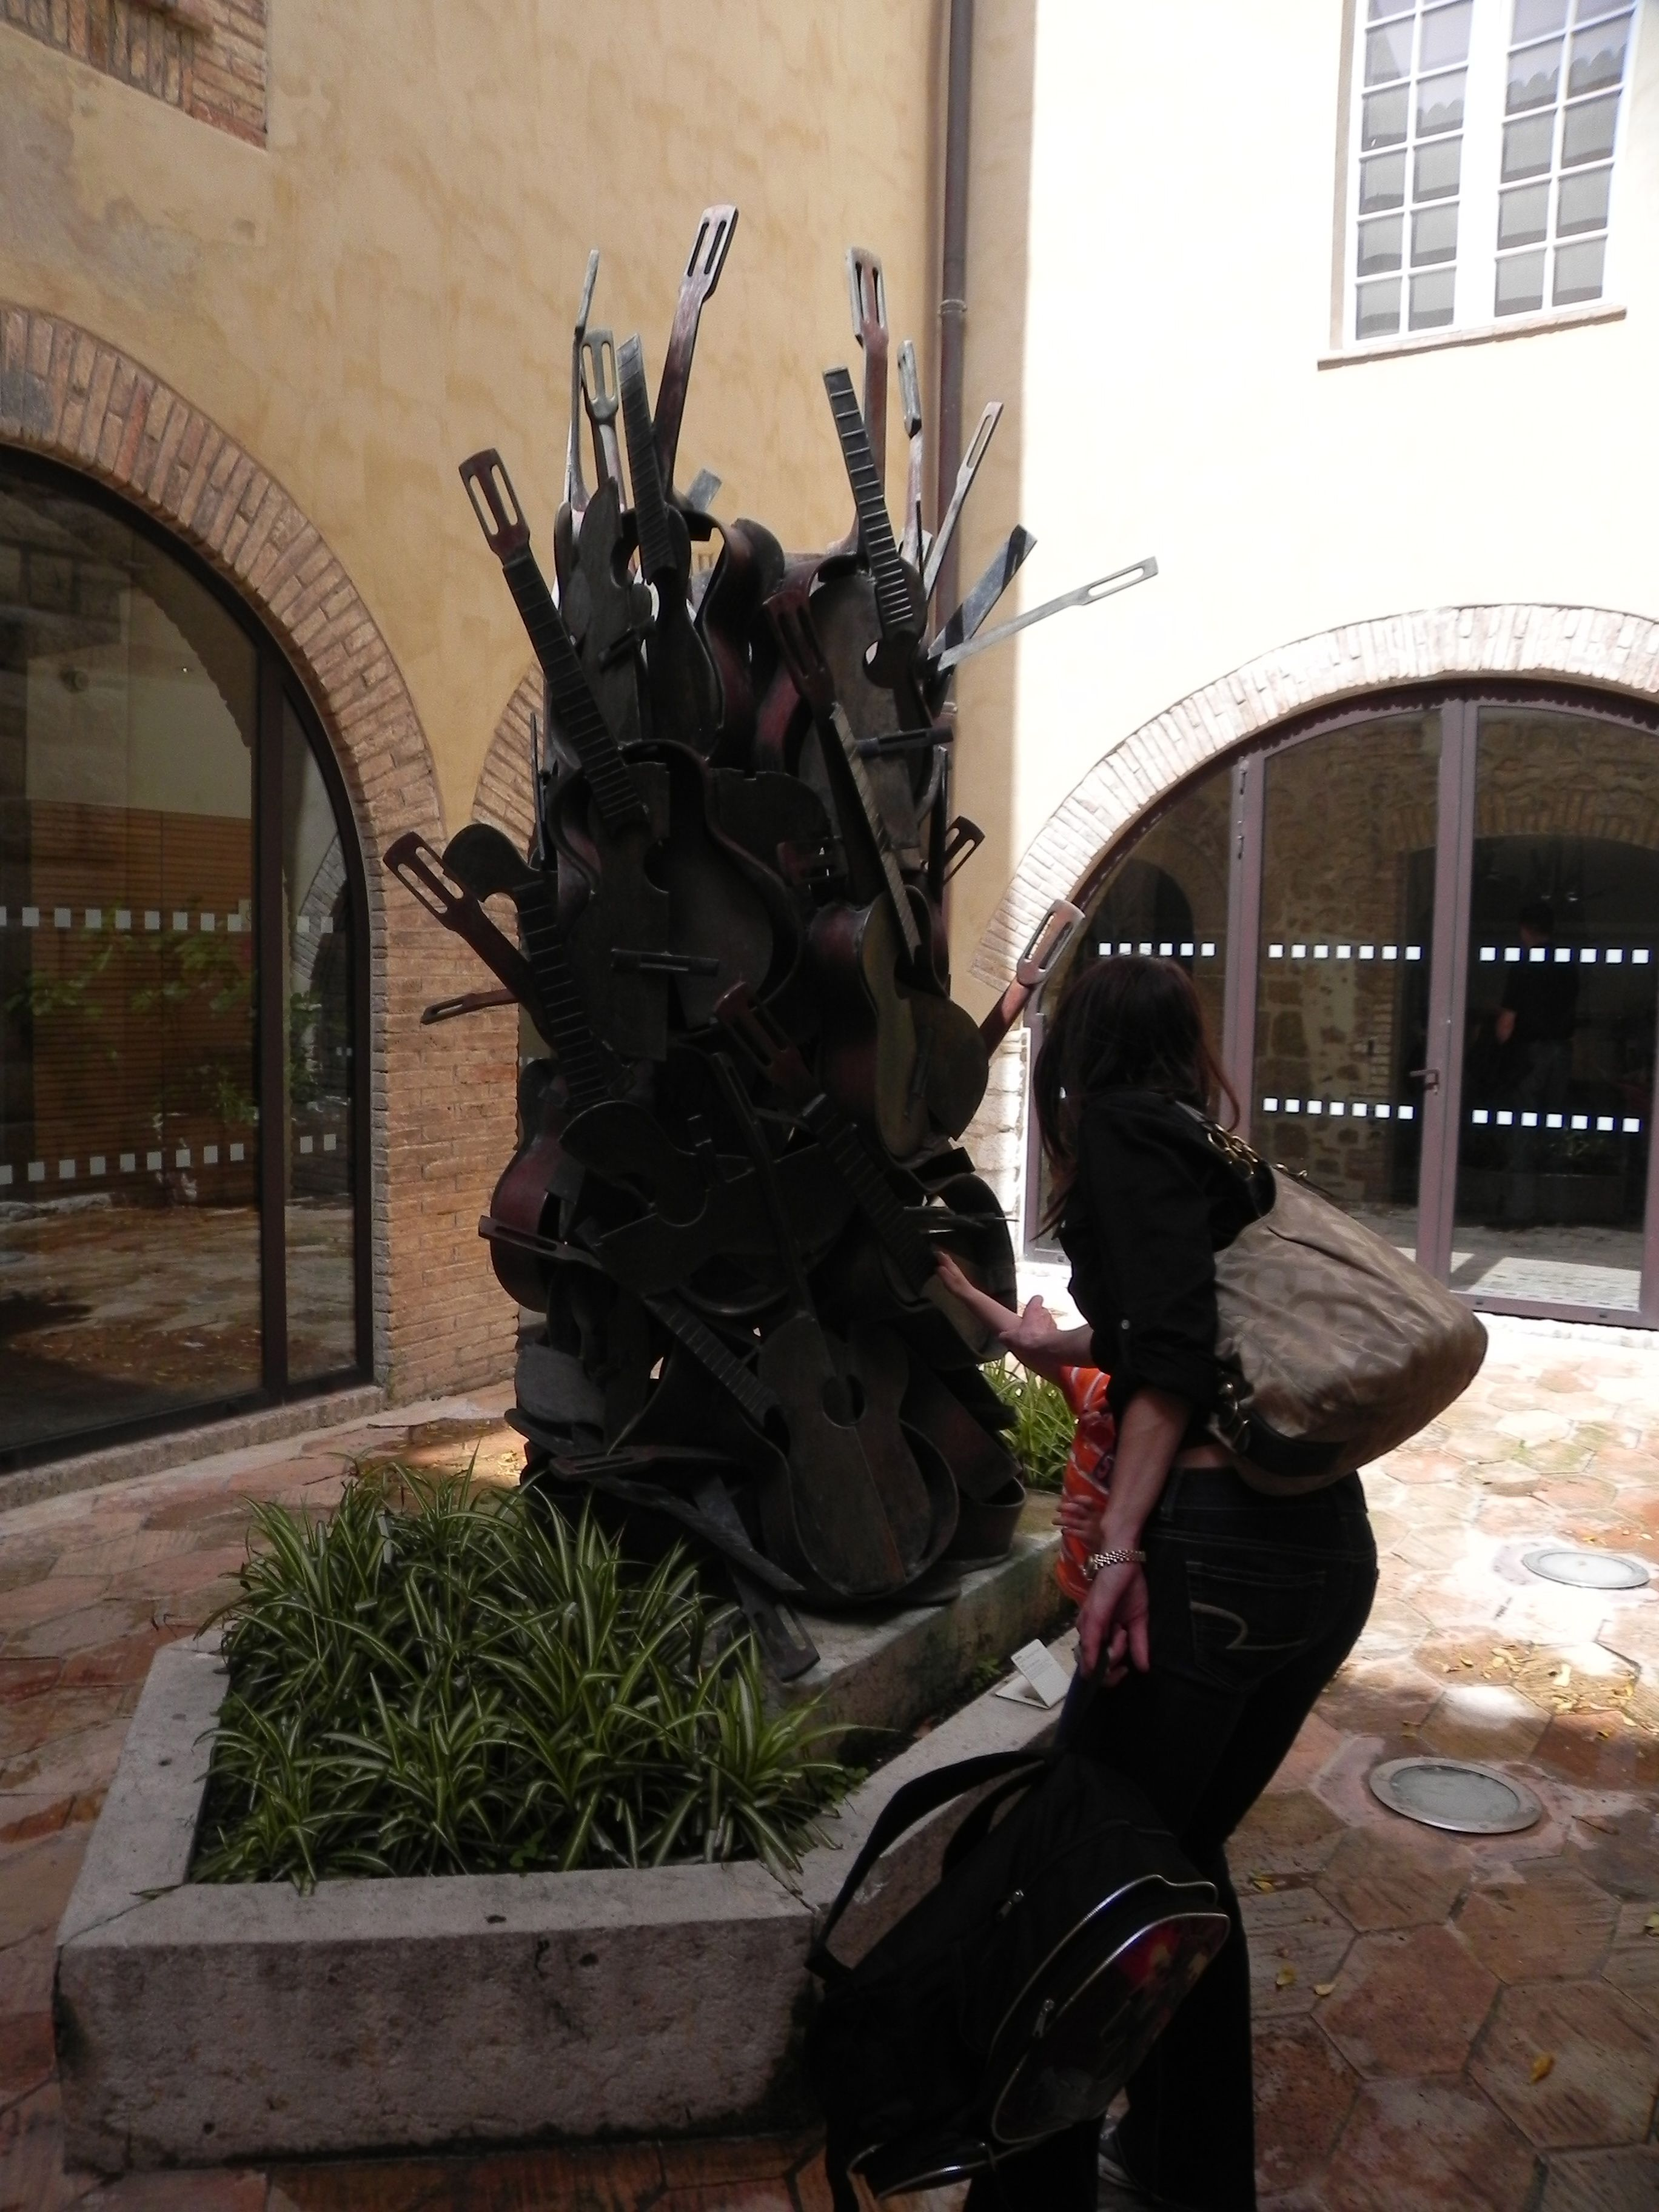 Flat Stanley enjoyed this sculpture at the Musee Picasso in Antibes, France. Can you tell what instrument makes up the sculpture? Flat Stanley figured it out.